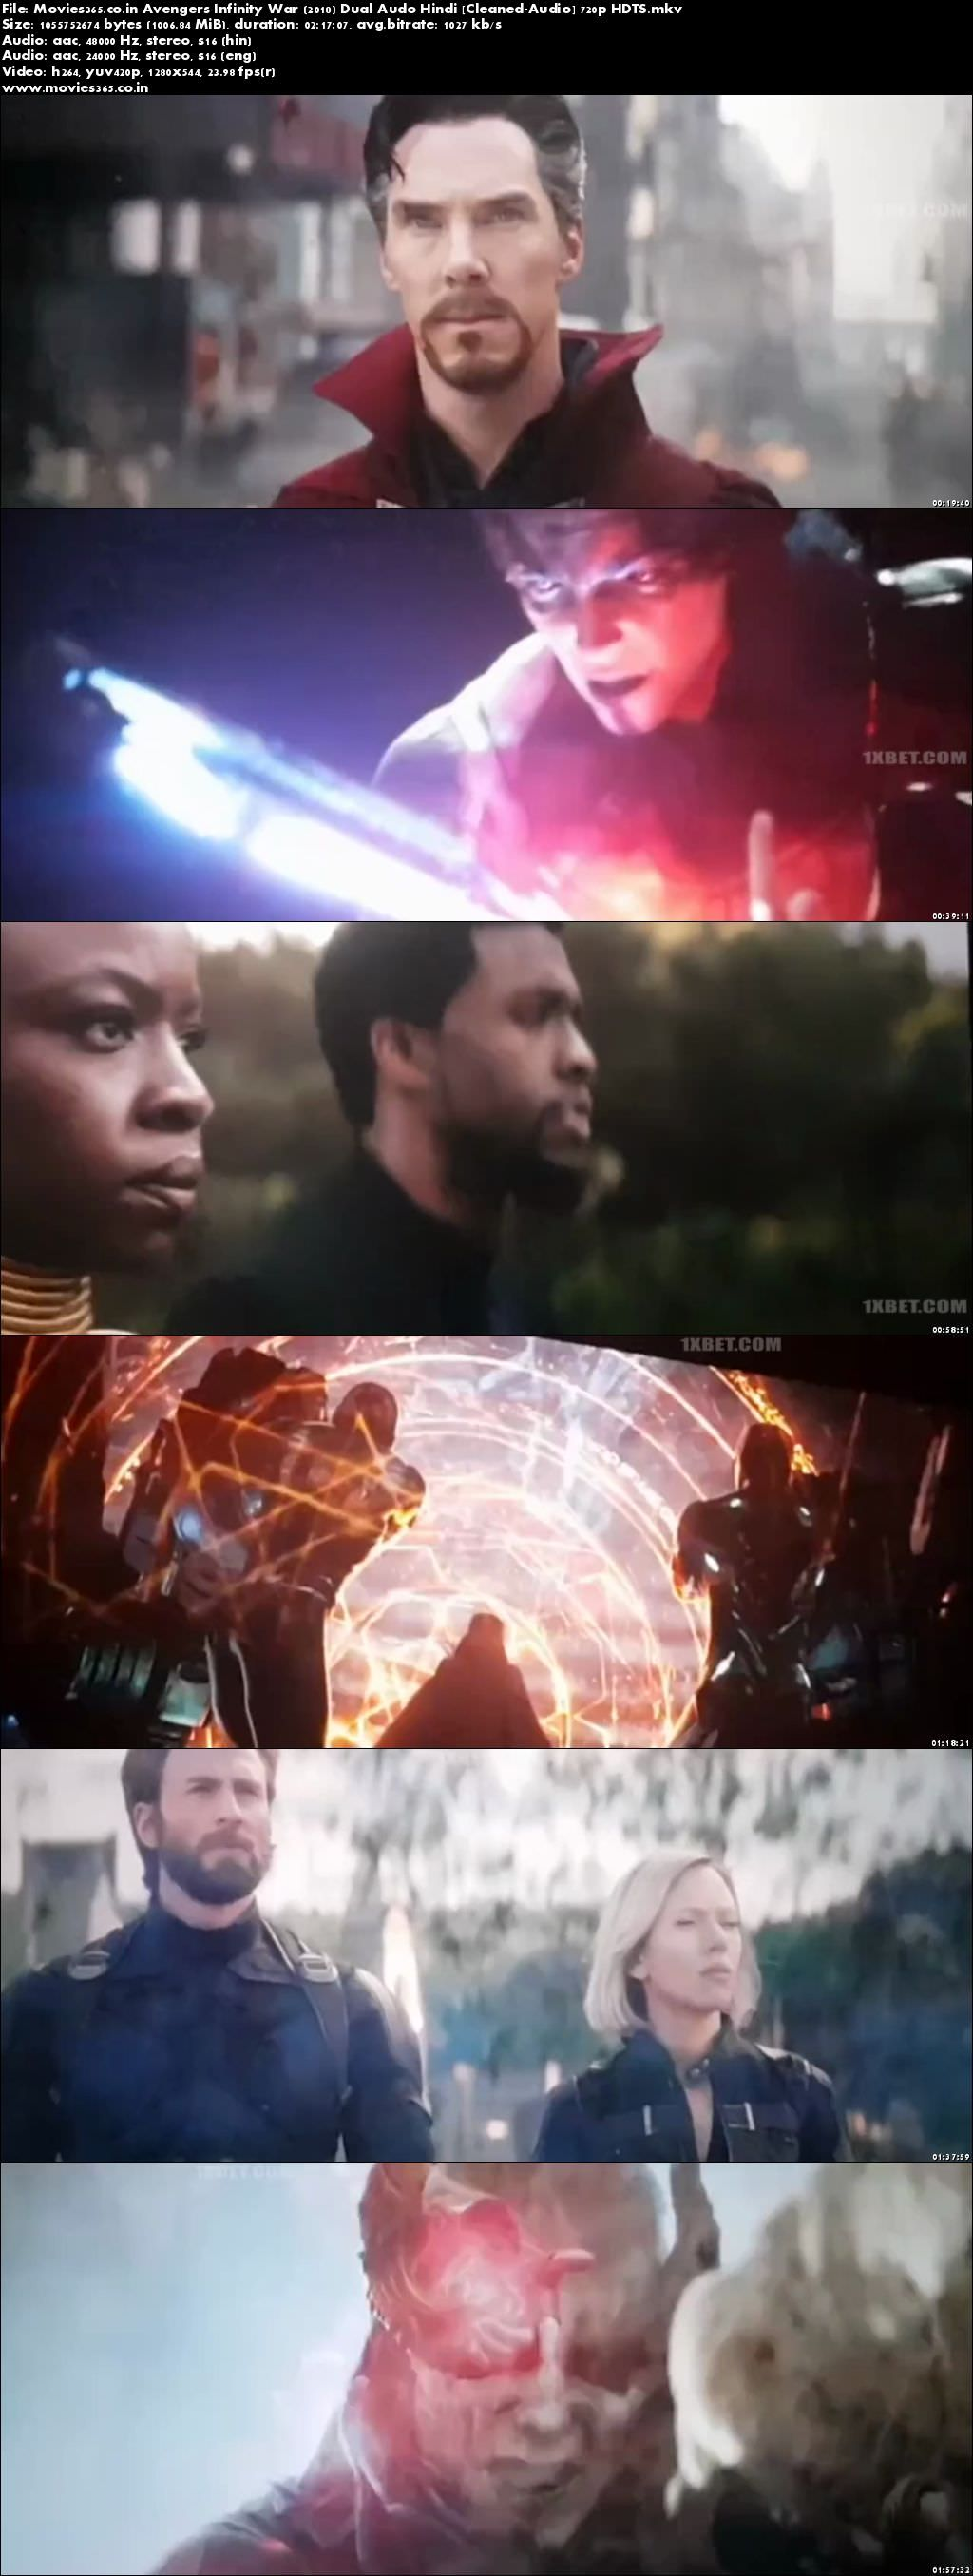 Single resumable download link for movie avengers infinity war movies365 download free hindi english dual audio hd movie watch online ccuart Gallery